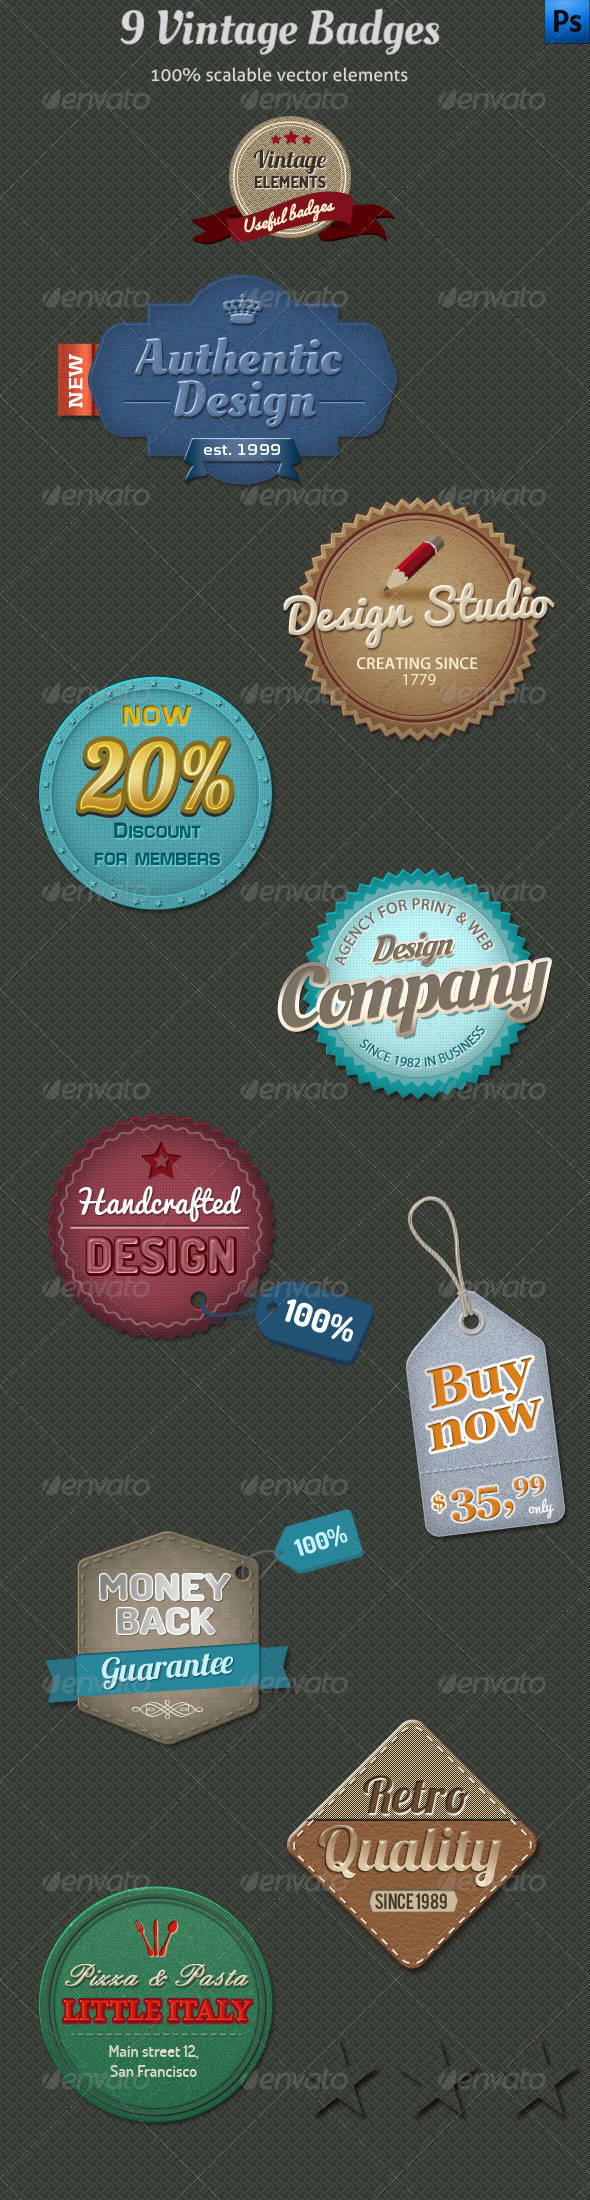 9 Vintage Badges - Badges & Stickers Web Elements